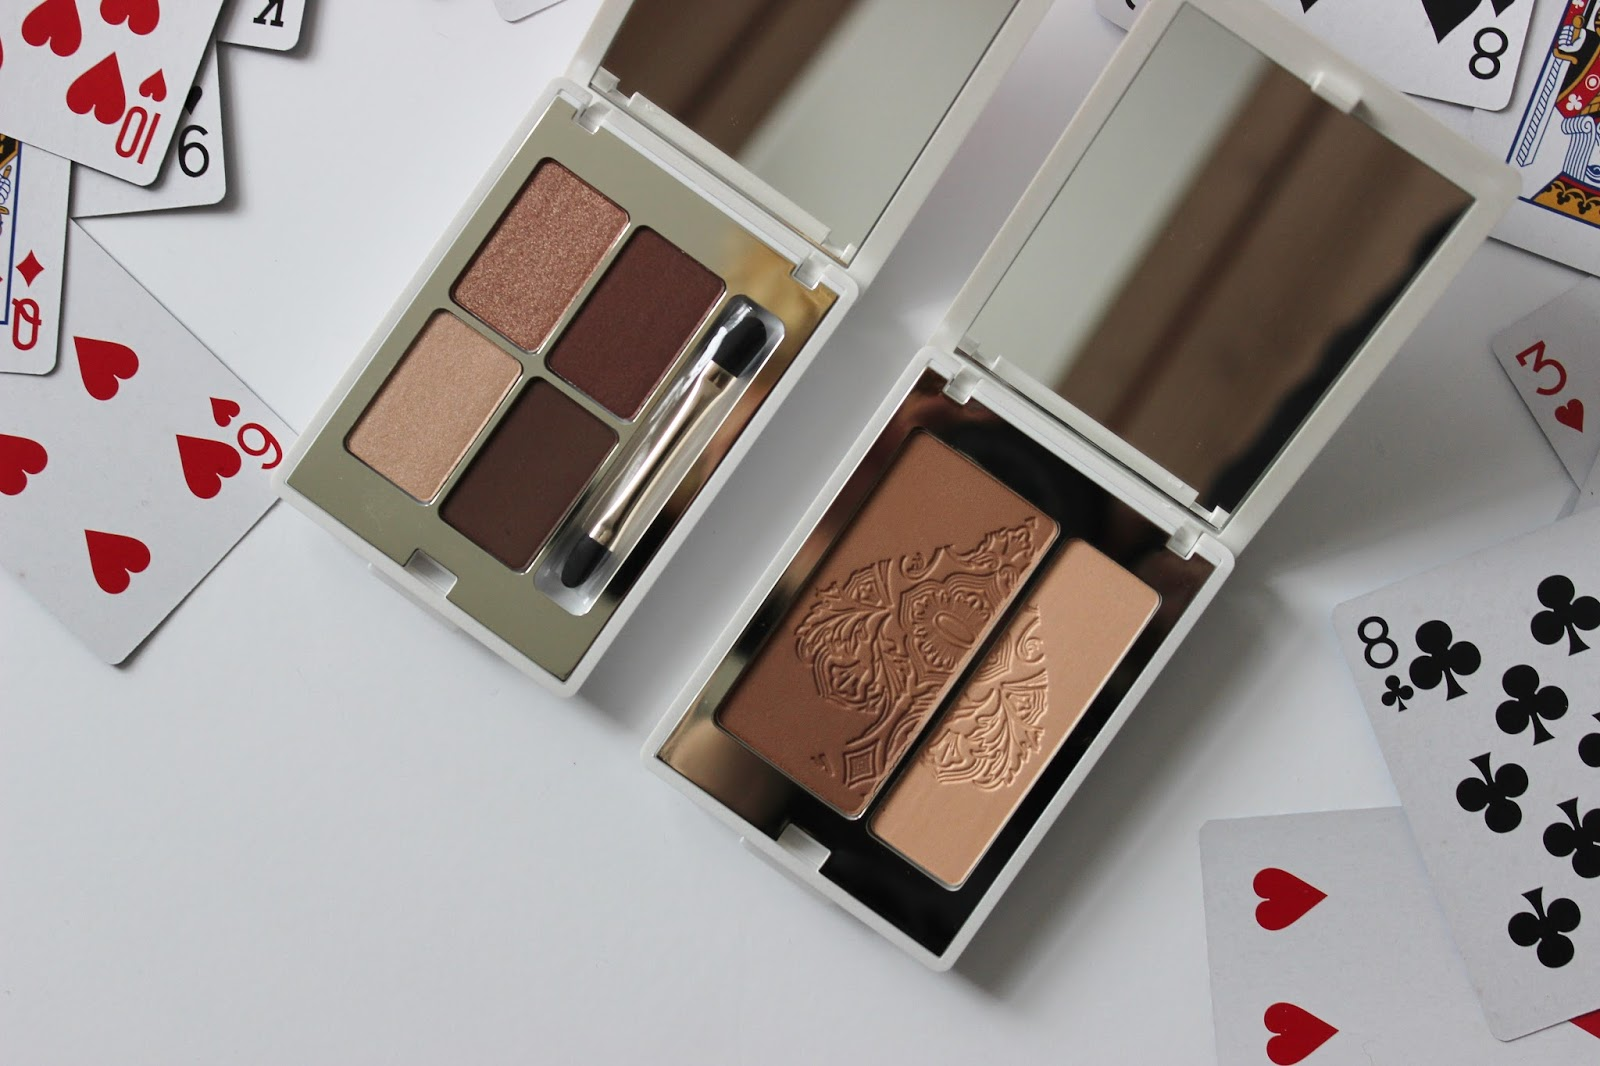 Kiko Daring Game collection packaging eye shadow palette and bronzer duo